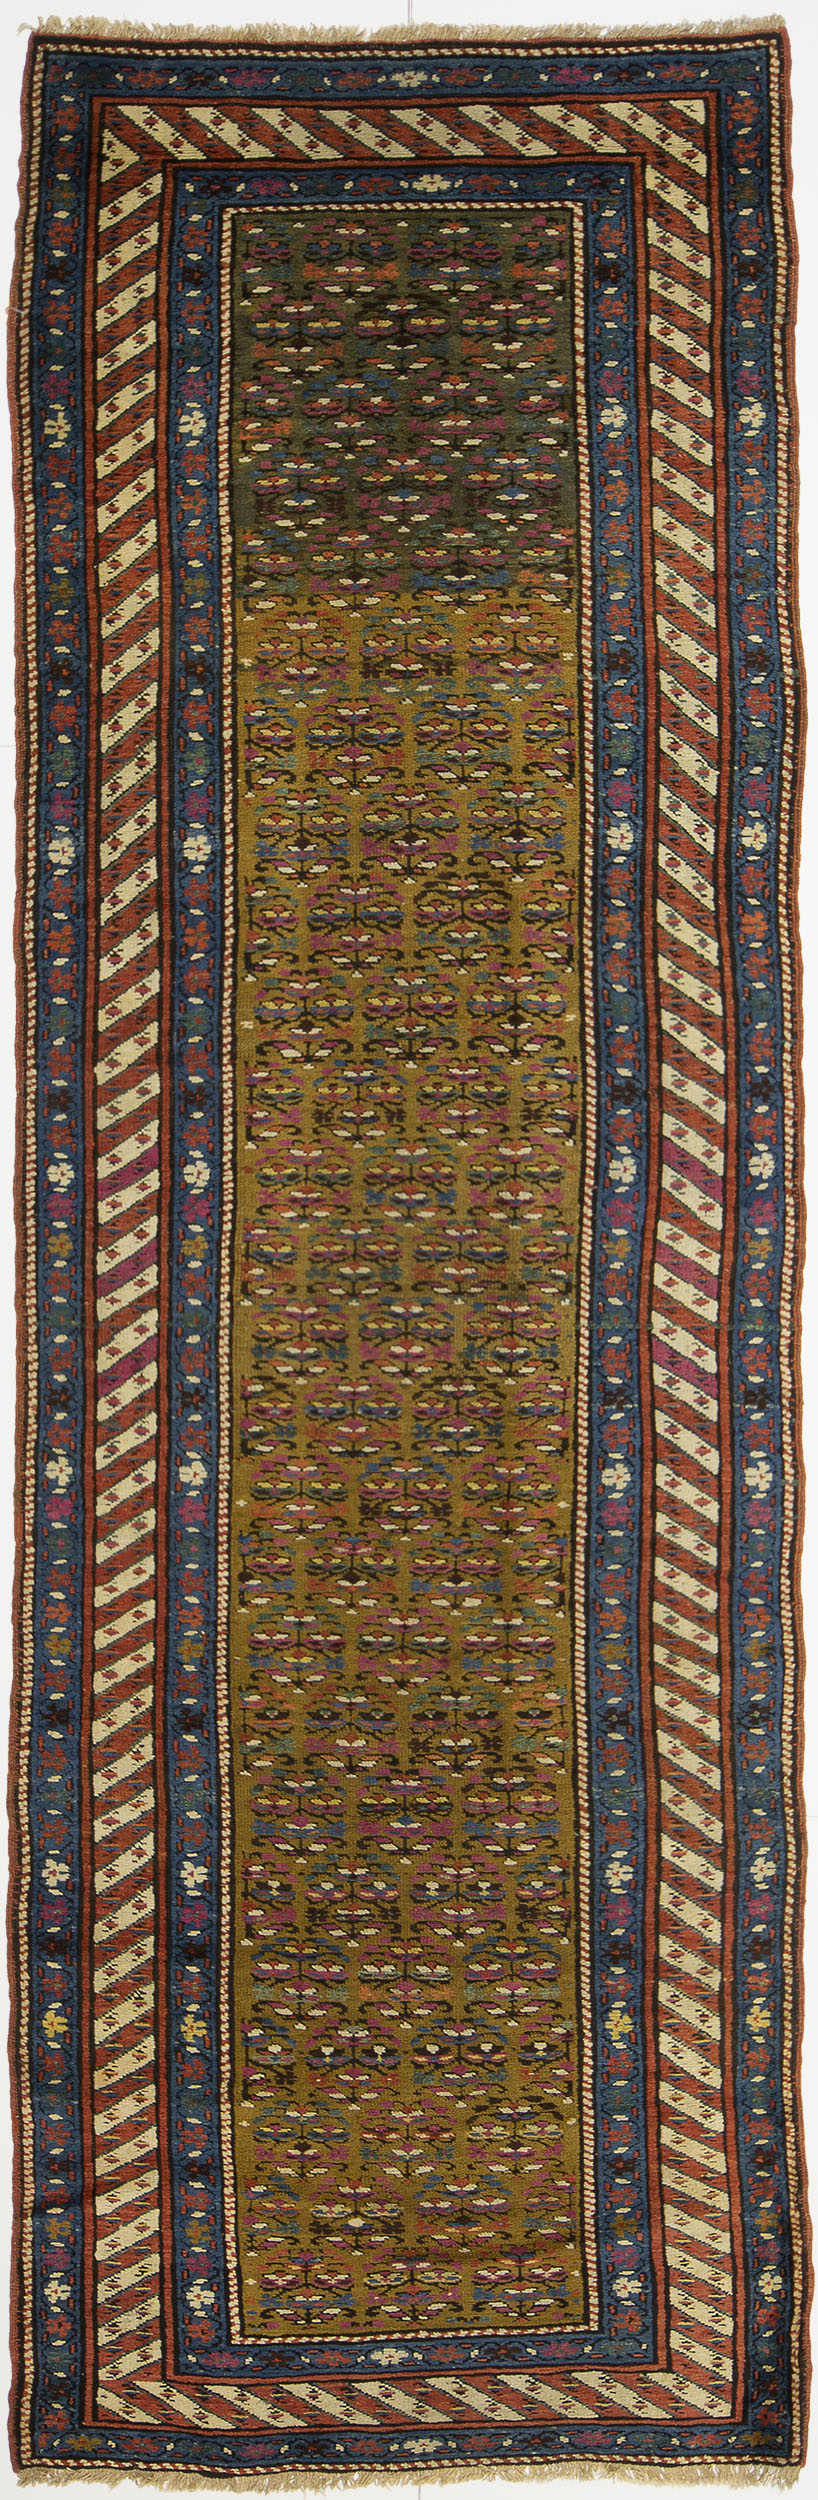 "Shirvan Runner 11' 5"" x 3' 5"""